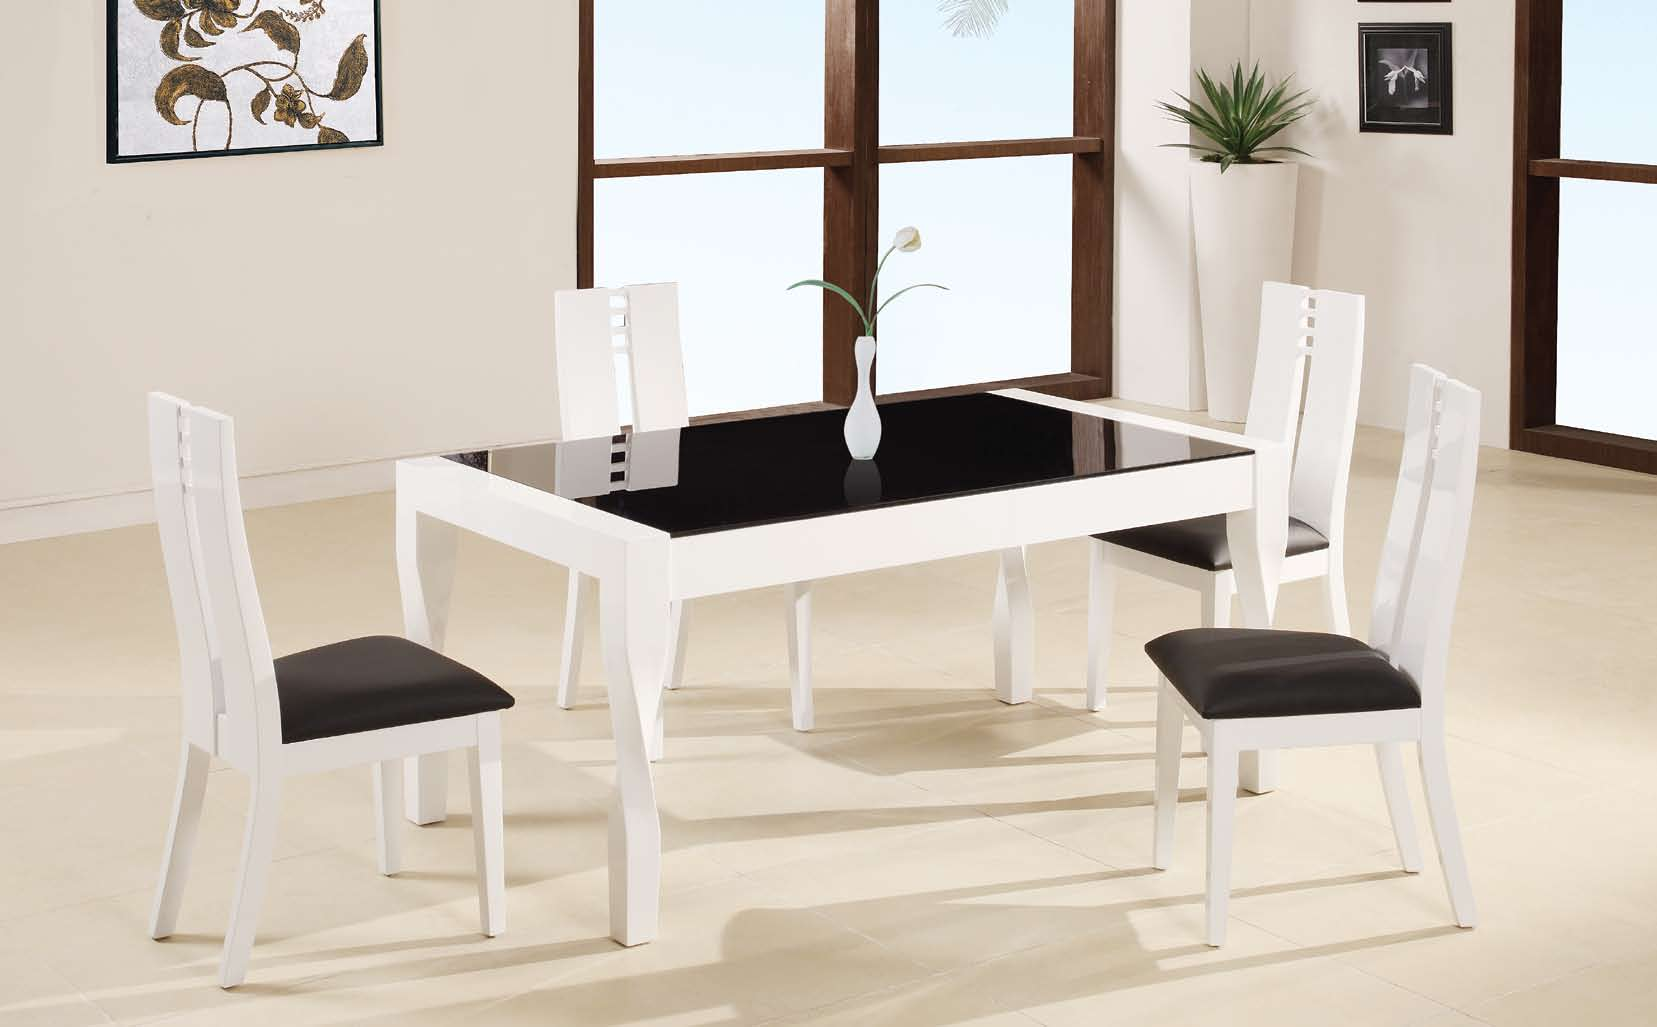 Global Furniture USA GF-822 Dining Set - Black/White